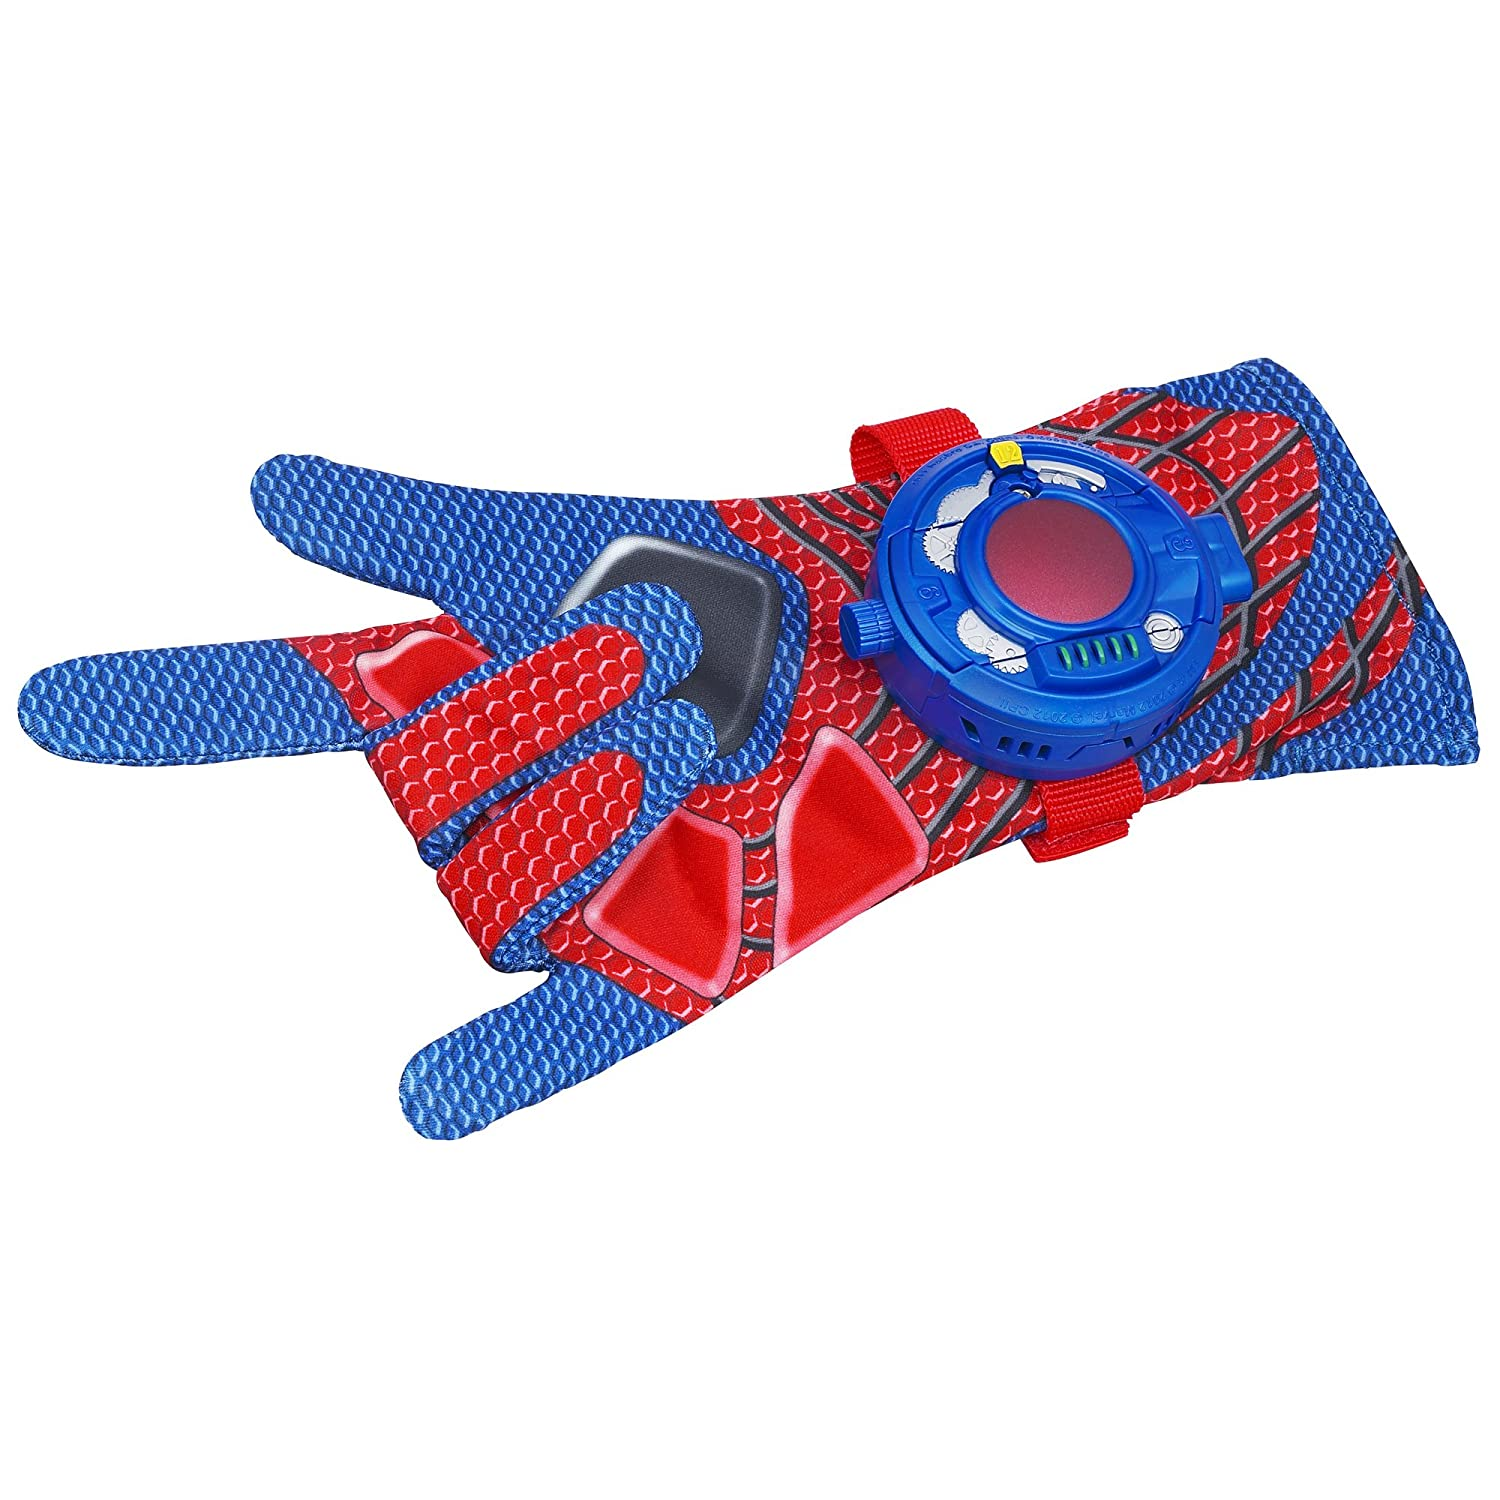 The Amazing Spider-man Hero FX Glove günstig online kaufen